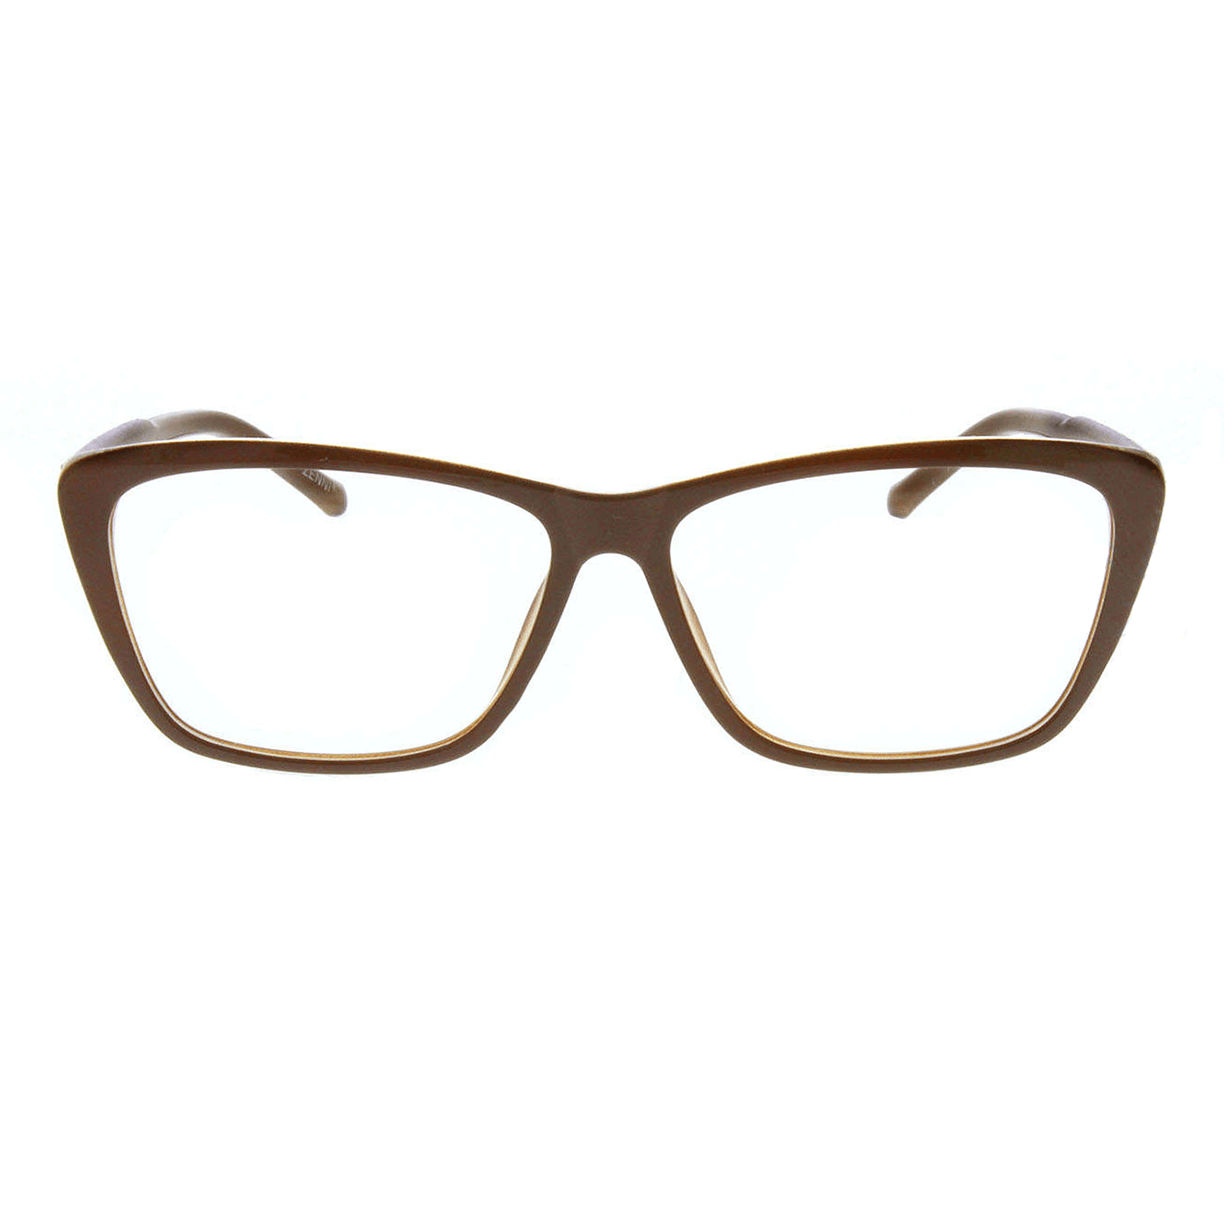 Eyeglasses Frame Trends 2016 : Eyewear Trends for the 2016 Spring/Summer Season